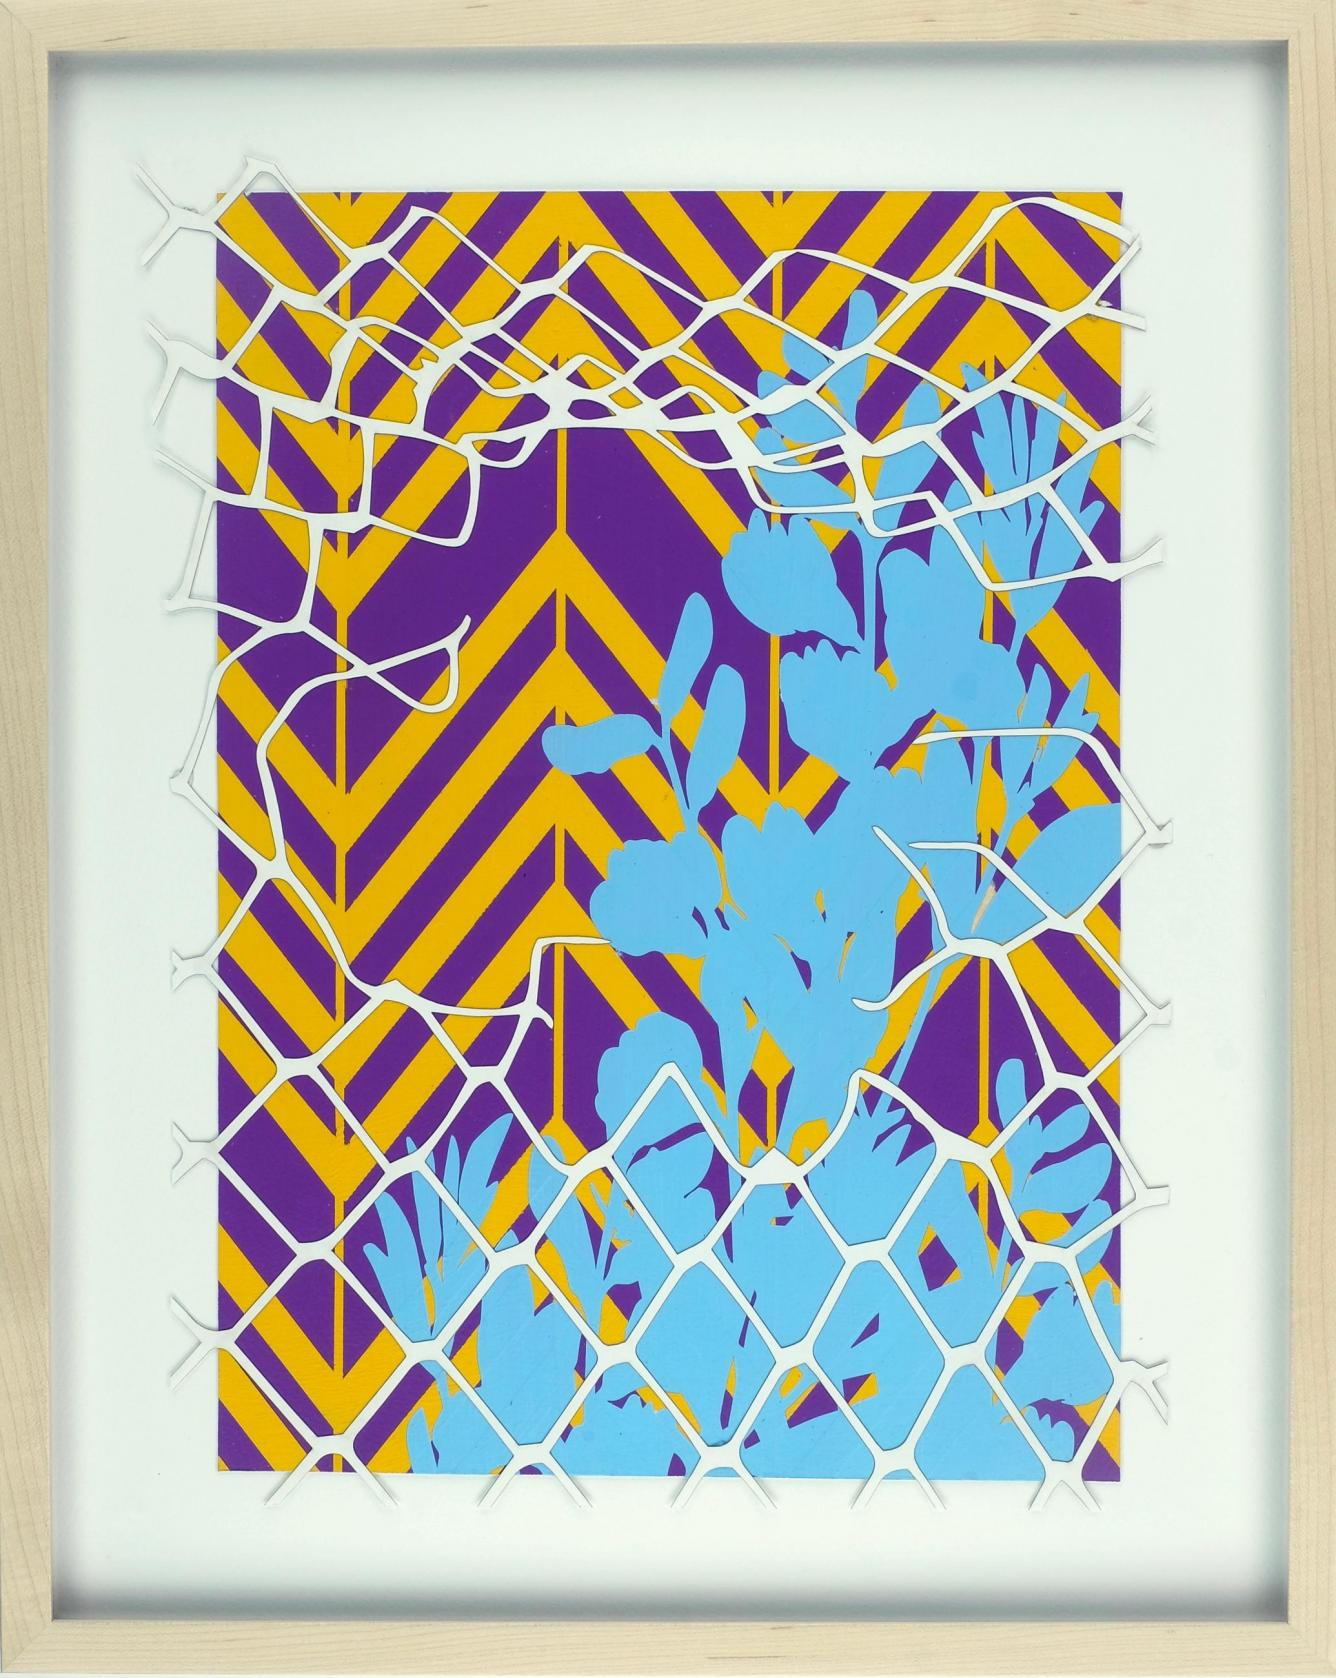 Fronterra No. 2. A psychedelic artwork depicting skyblue flowers against a yellow and purple zig zag background. A depiction of a white chainlink fence is torn open, almost as if we are looking through the fence.